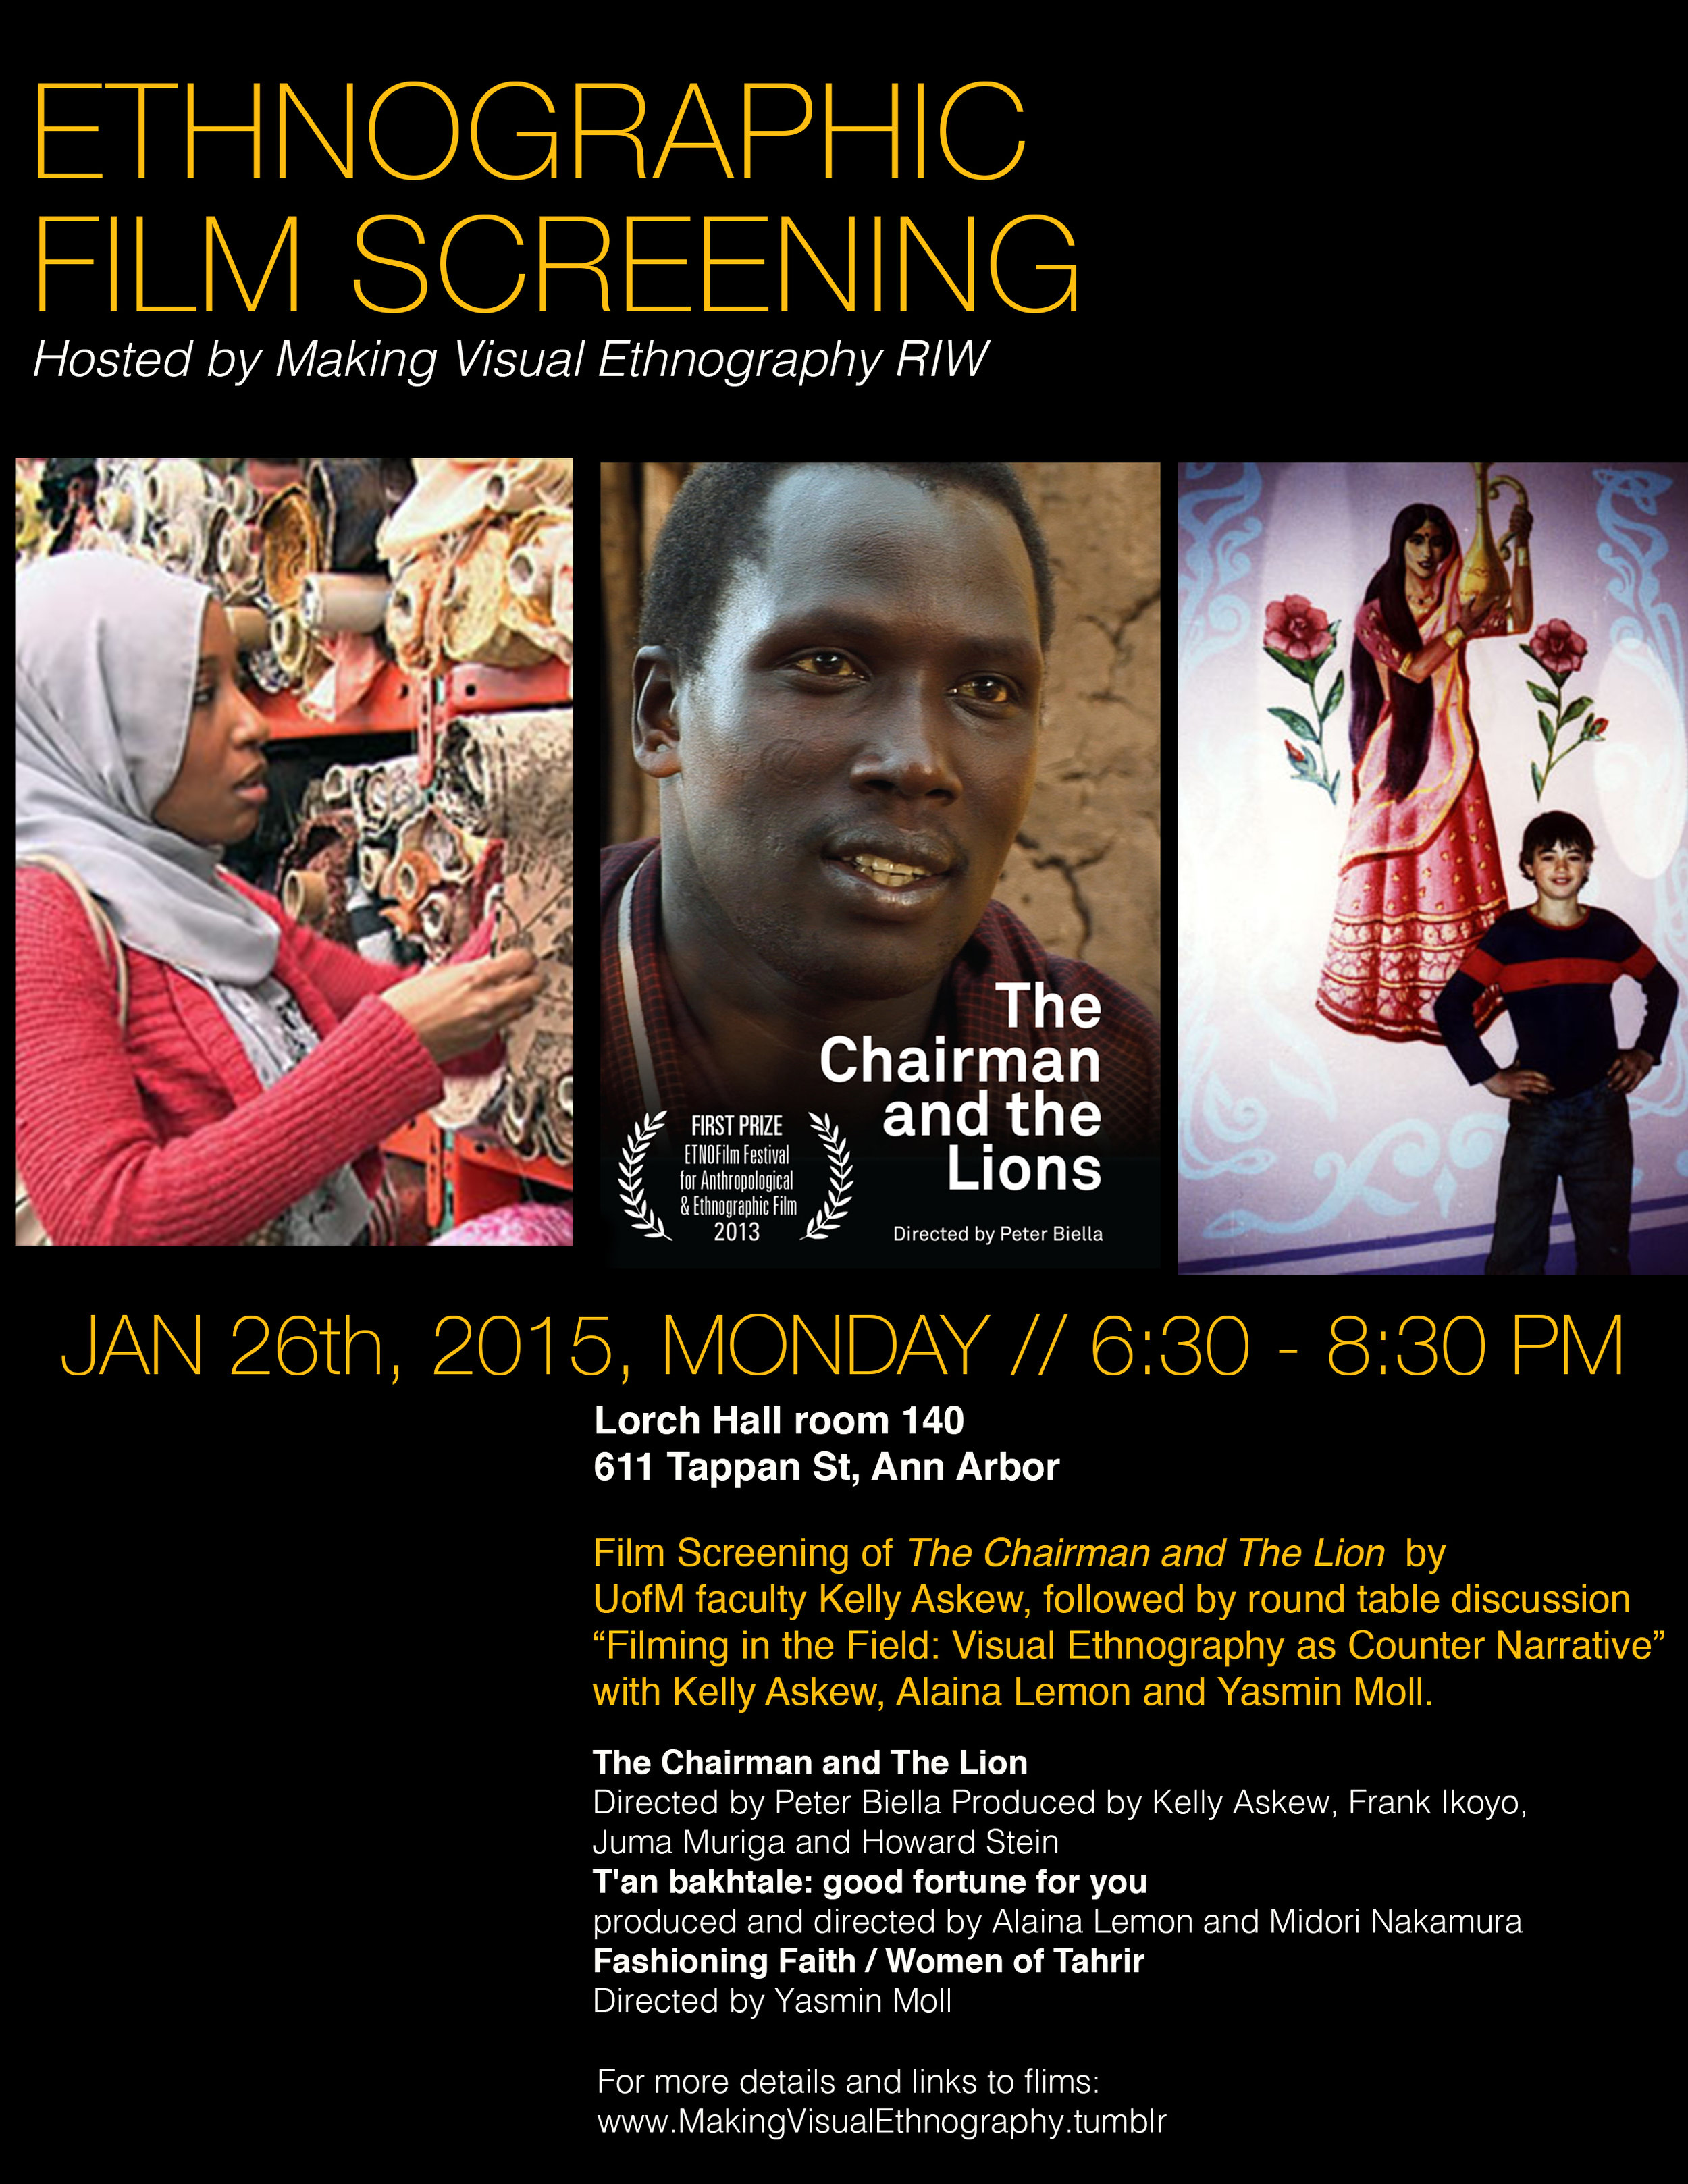 film Screening poster for Making VIsual Ethonography RIW, University of Michigan